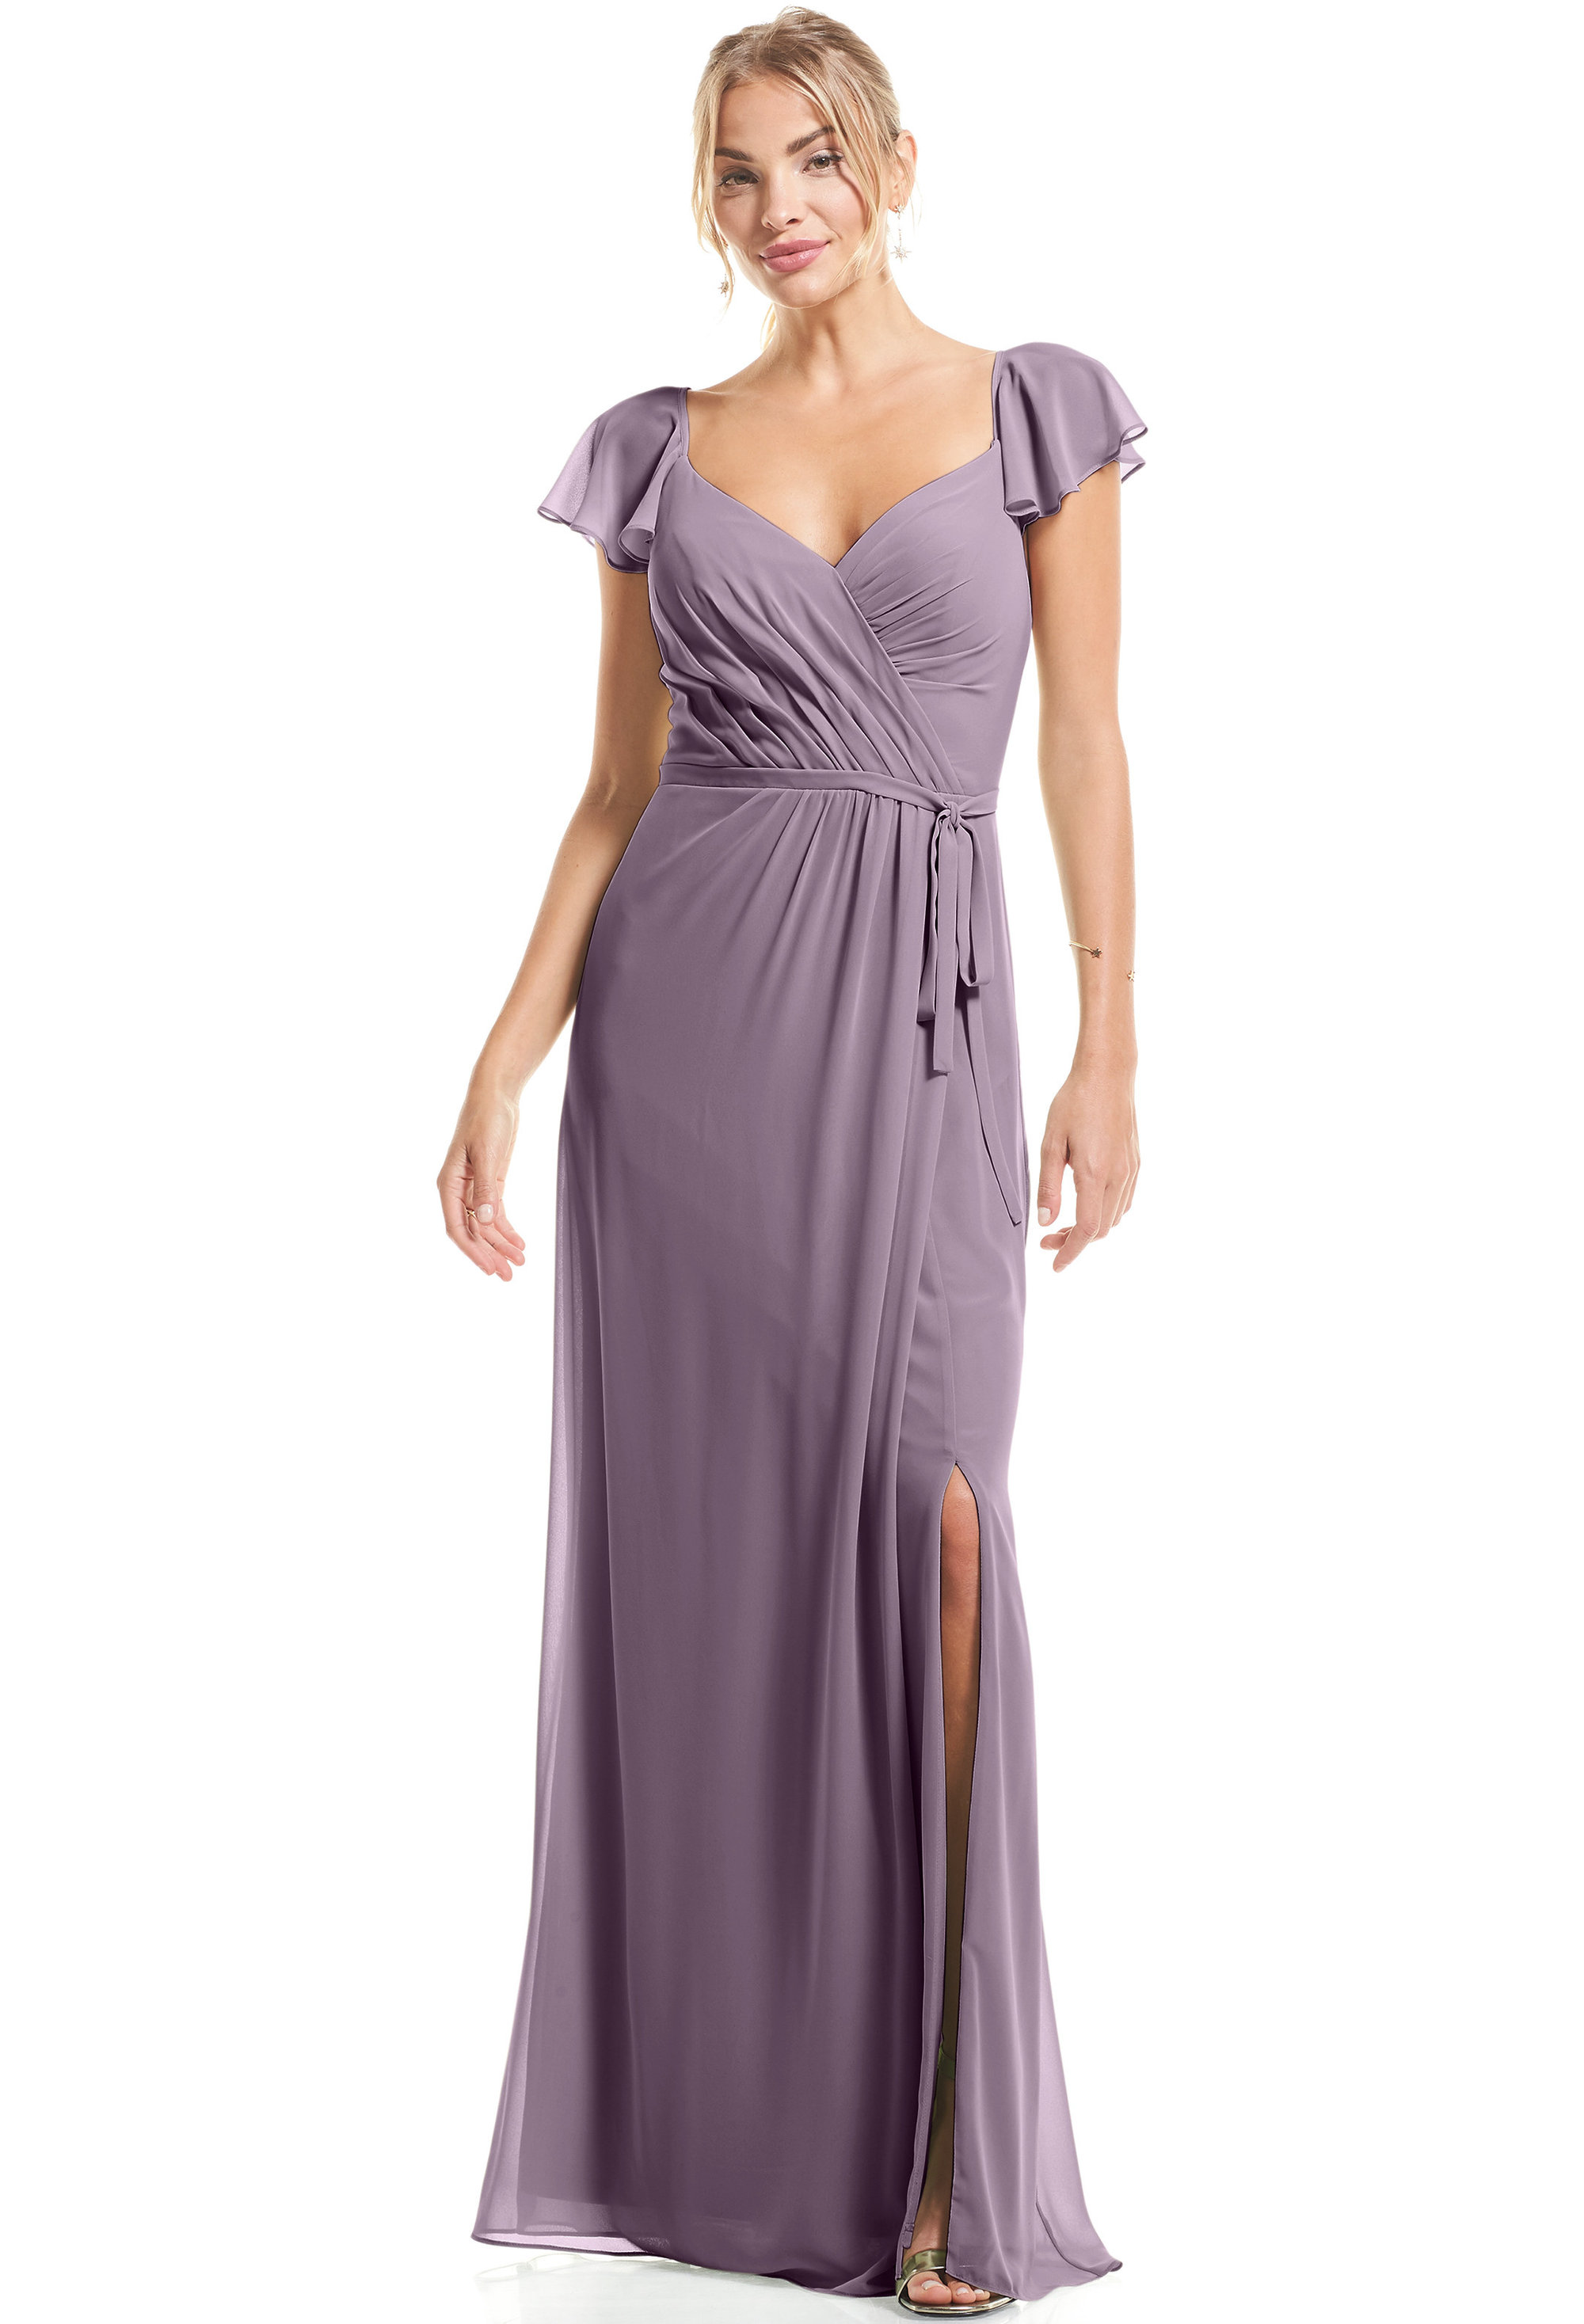 Bill Levkoff VICTORIAN LILAC Chiffon Flutter Sleeve A-Line gown, $89.00 Front